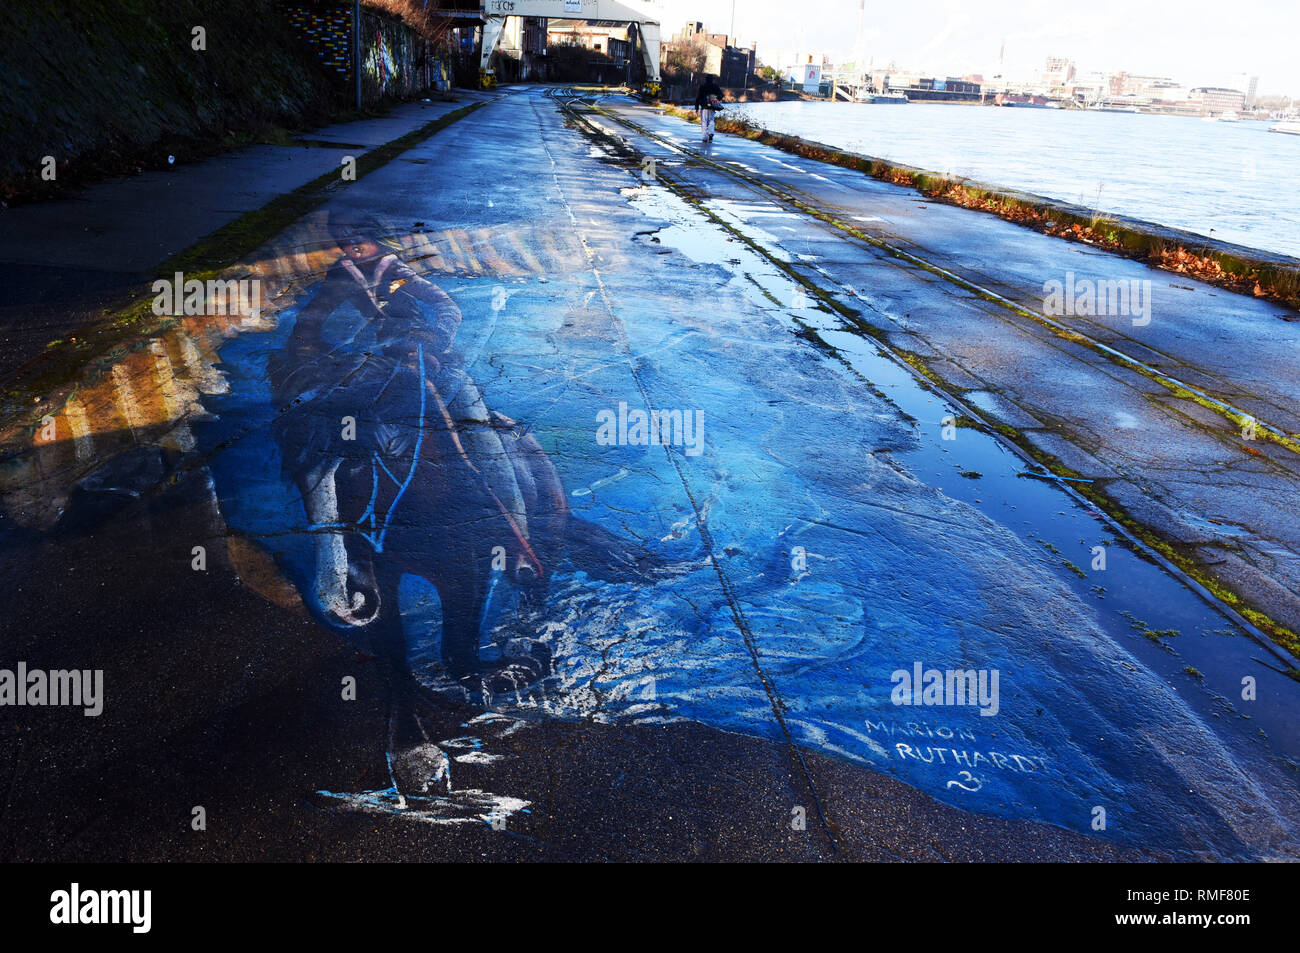 Krefeld, Germany. 11th Feb, 2019. 'Street Art Art' on the promenade on the banks of the Rhine in the district of Uerdingen, which was created by the street art artist 'Marion Ruthardt ' during the event 'Rhine Side Gallery 2018' of the city of Krefeld. Credit: Horst Ossinger/dpa/Alamy Live News - Stock Image